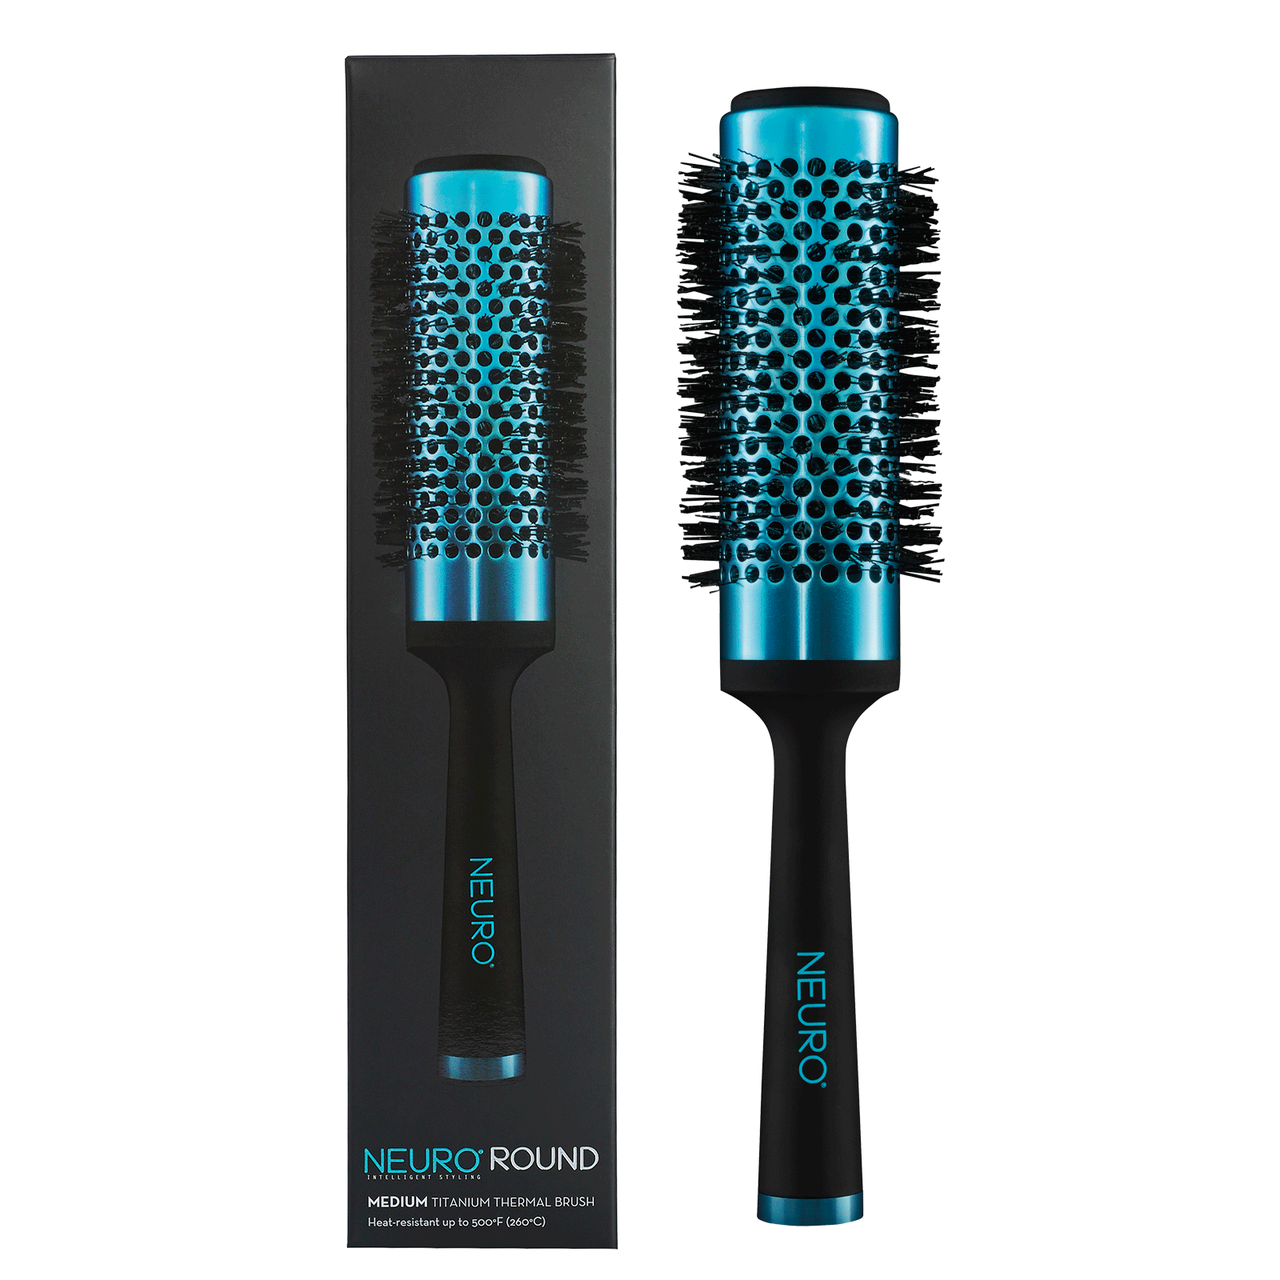 Paul Mitchell Pro Tools Neuro® Round Titanium Thermal Brush - Medium